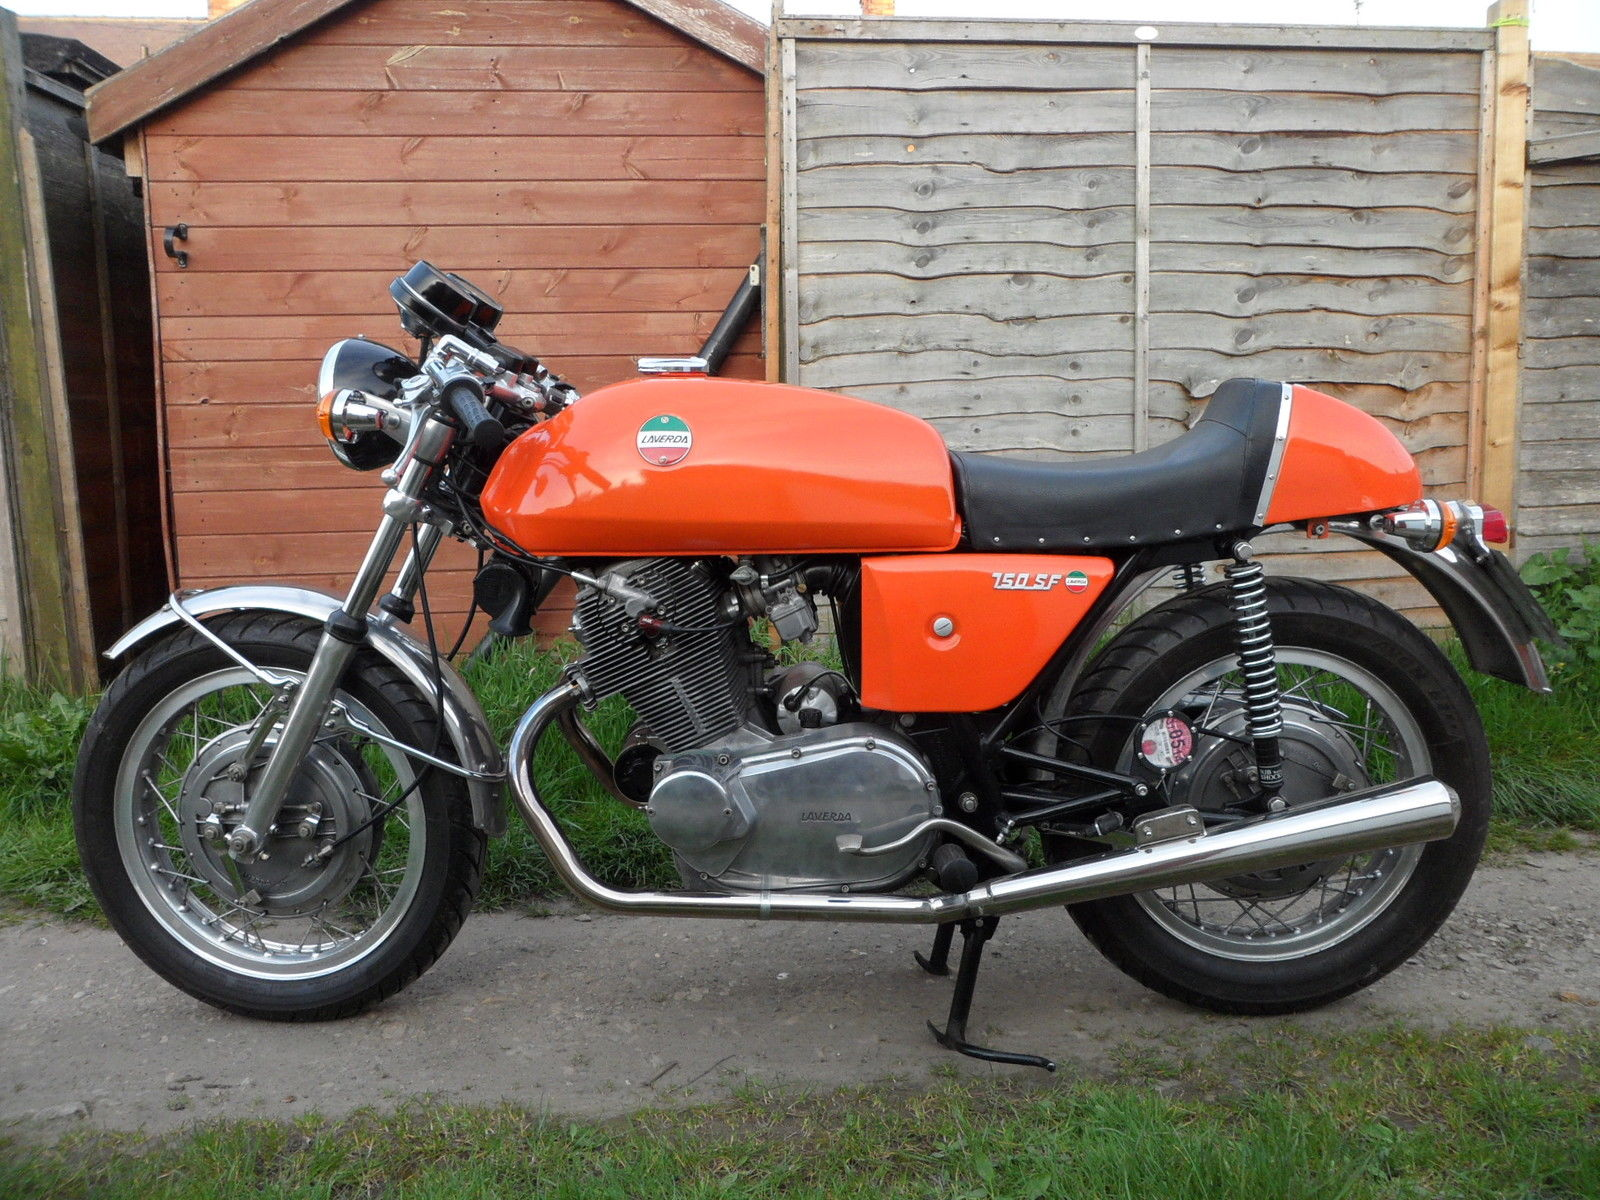 Laverda 750sf photo - 7